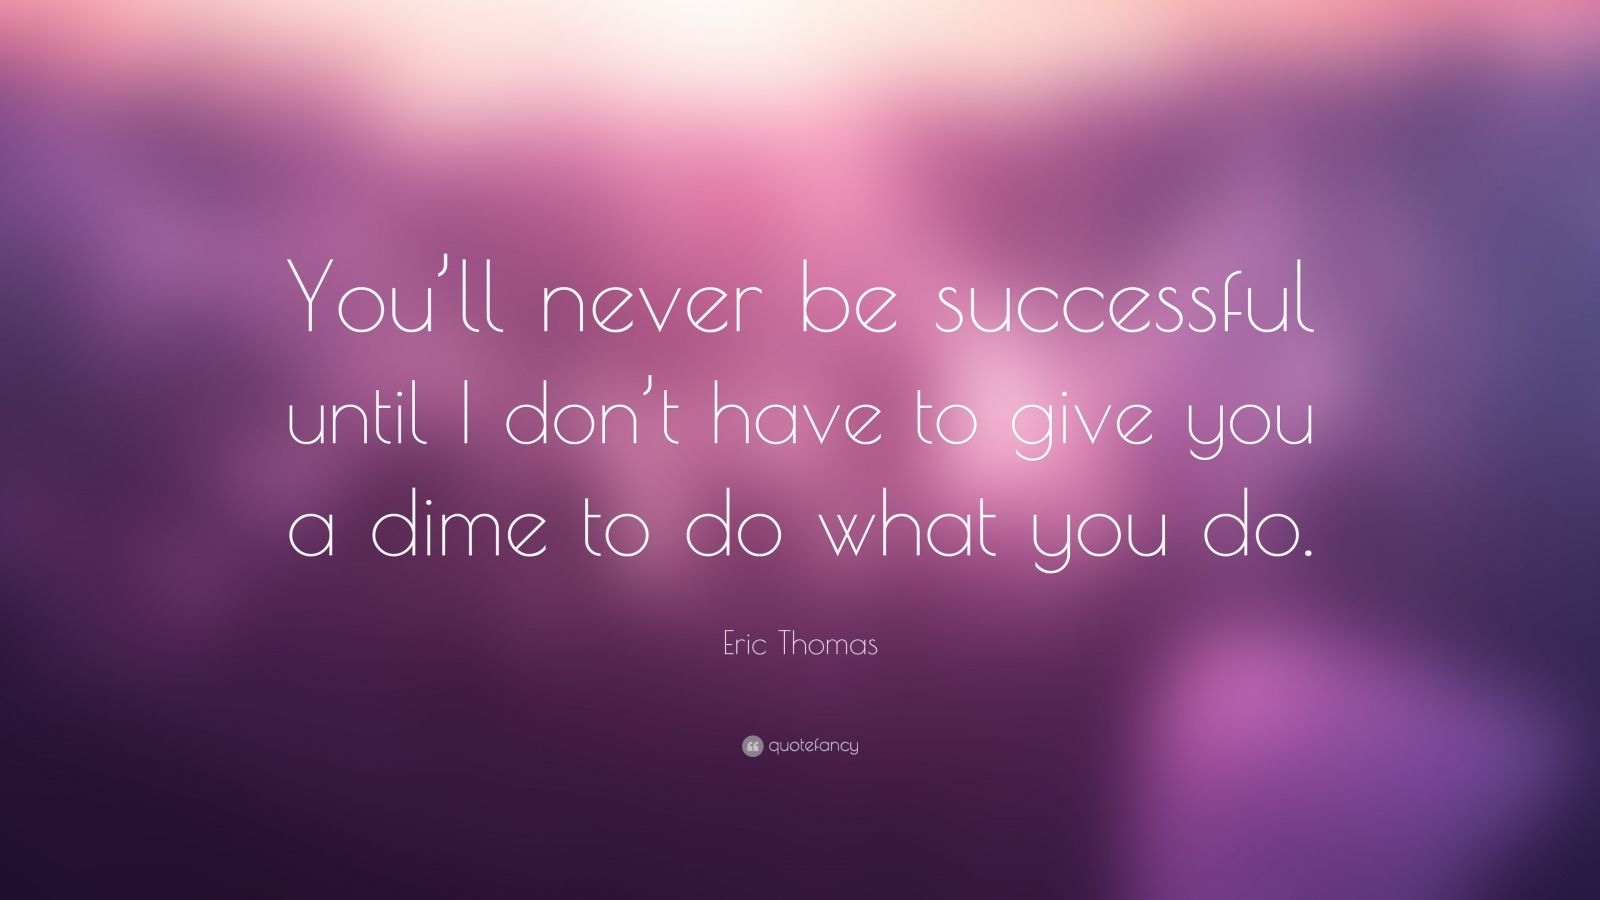 """Eric Thomas Quote: """"You'll never be successful until I don't have to give you a dime to do what you do."""""""